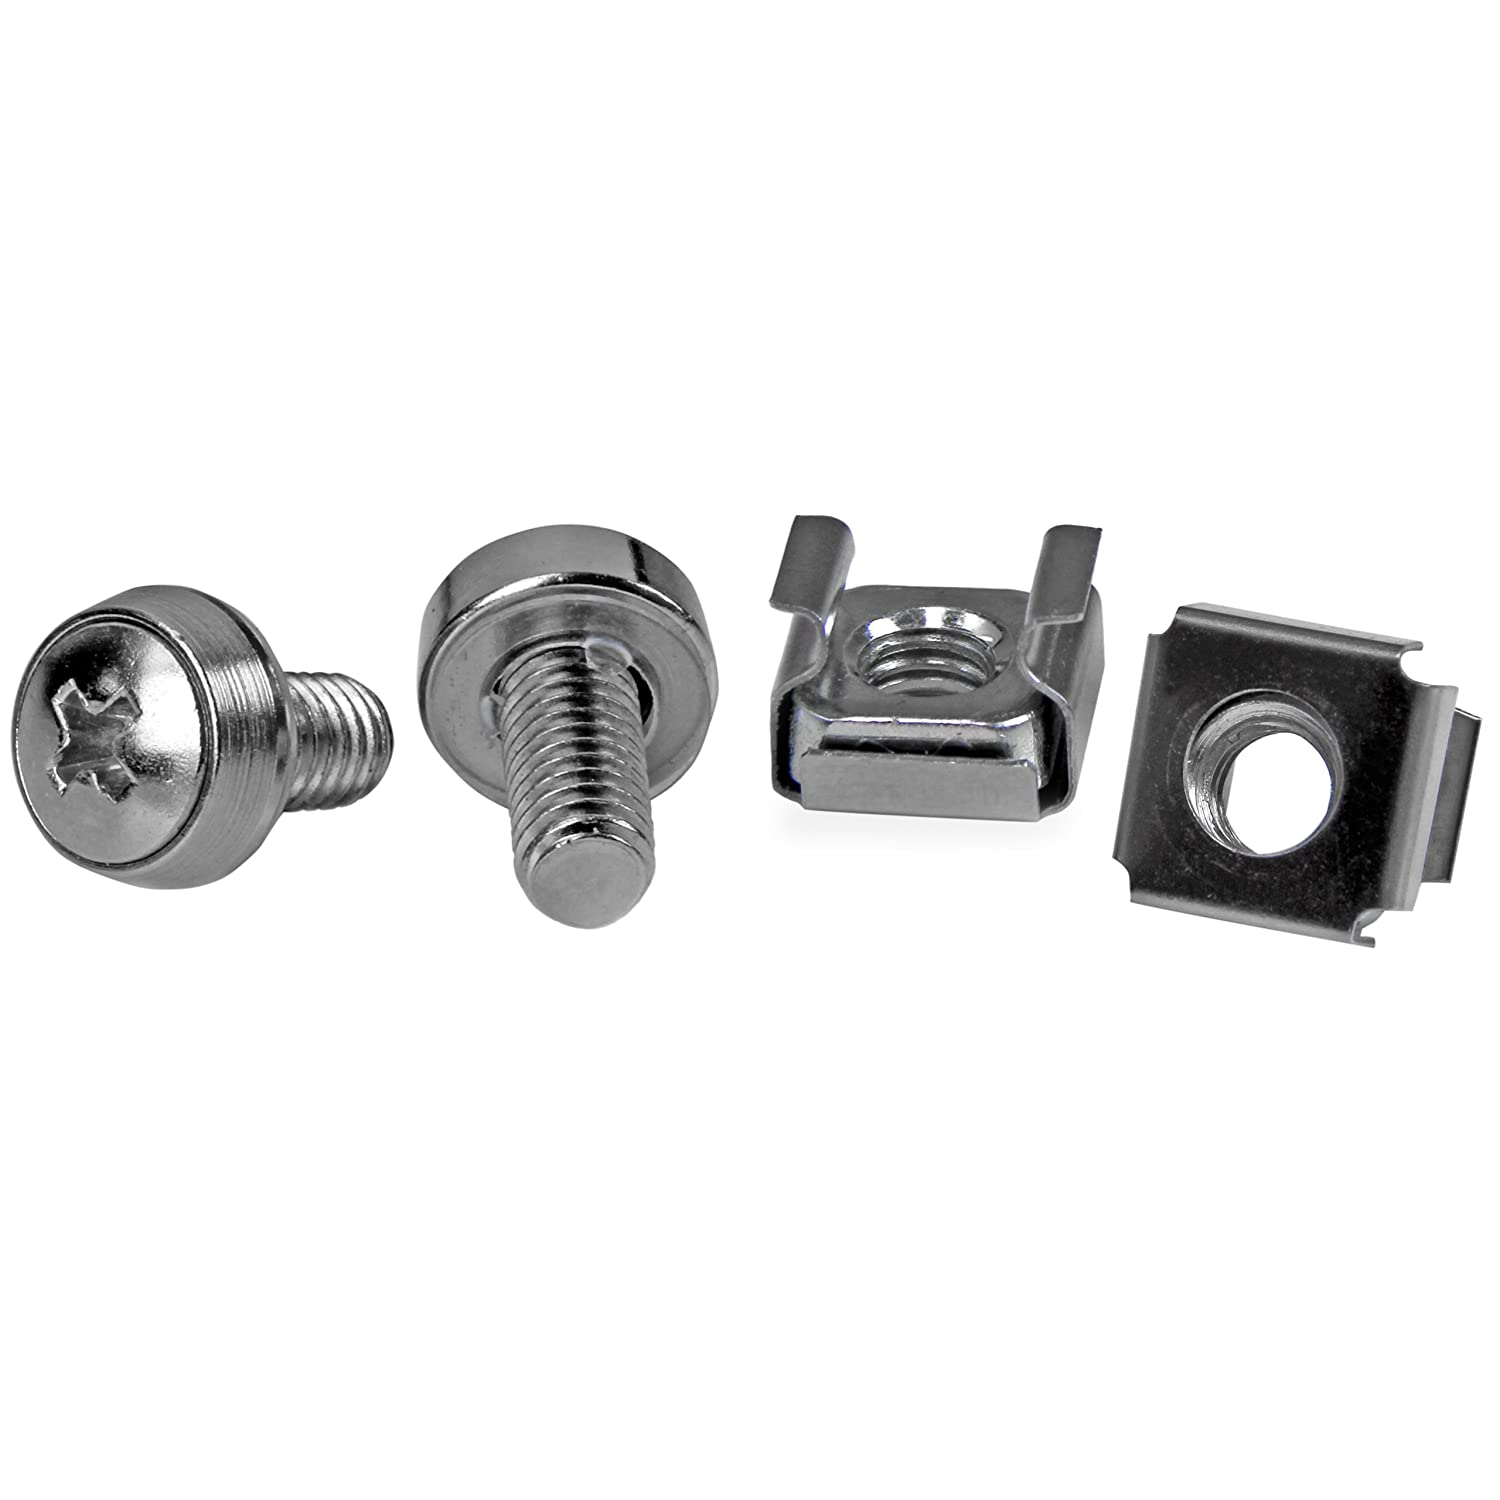 Startech 50 Pkg M6 Mounting Screws and Cage Nuts for Server